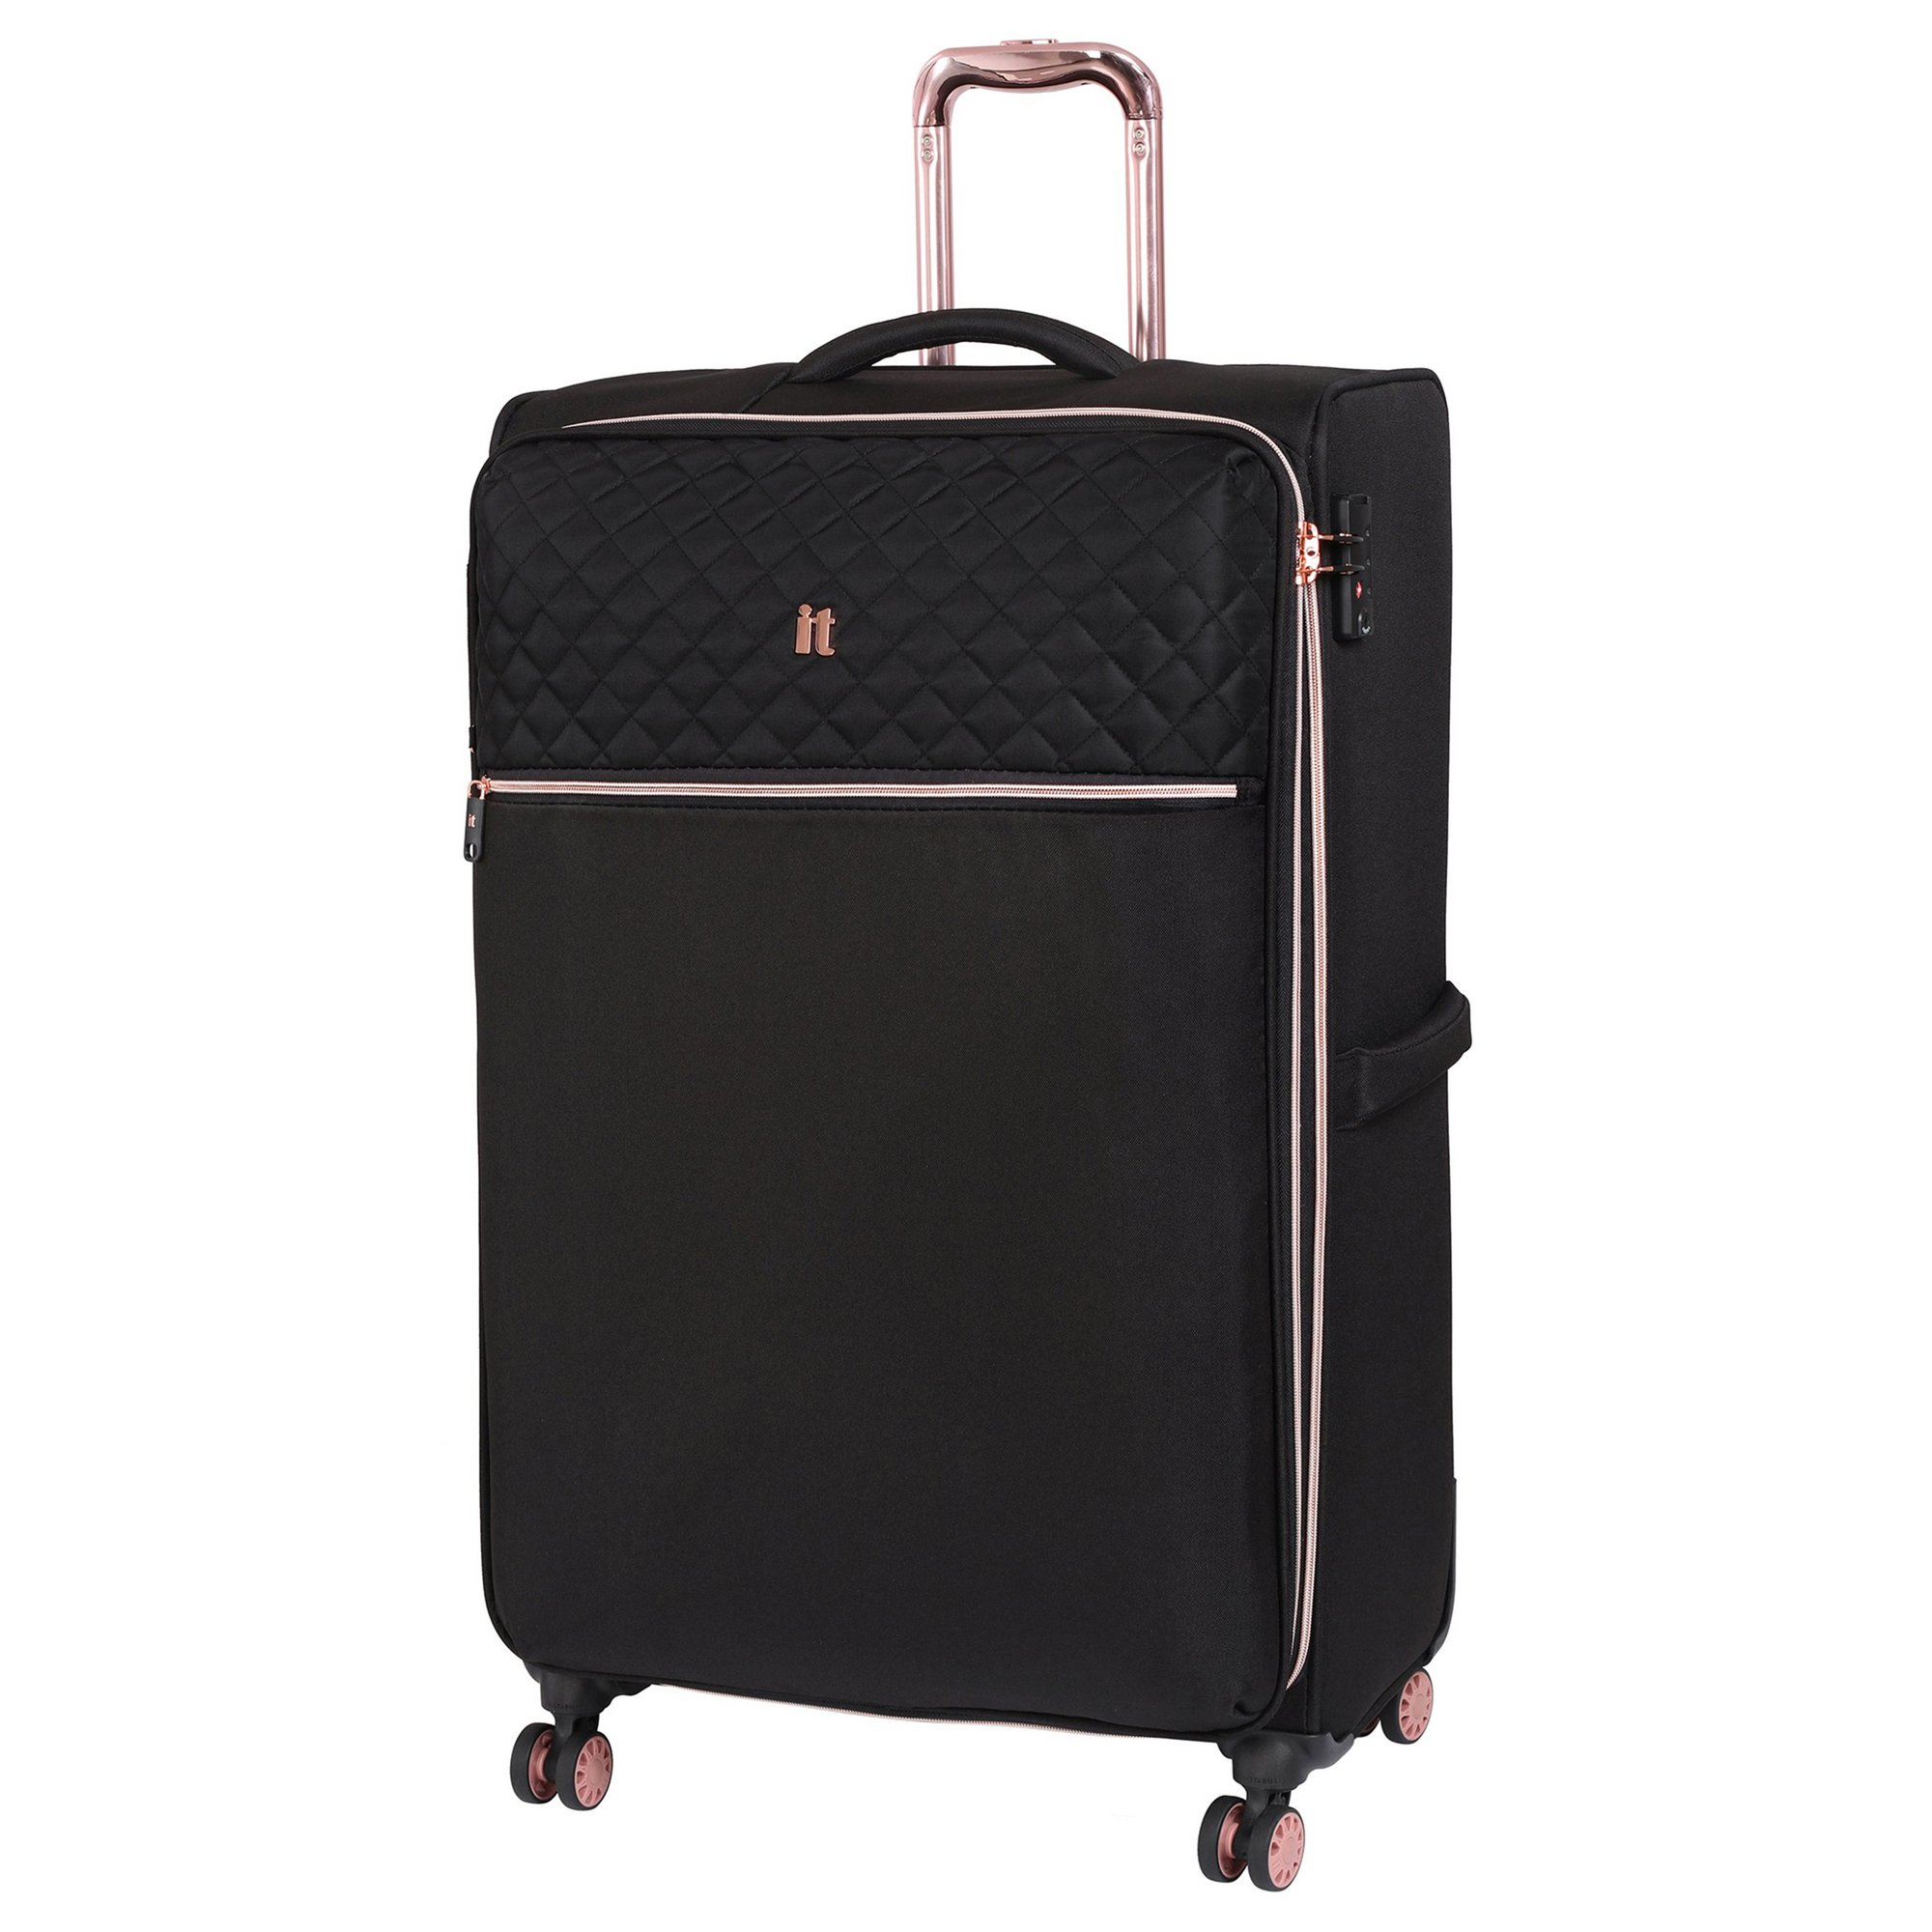 Image of IT Luggage Divinity 8 Wheel Black Expander Suitcase with Lock